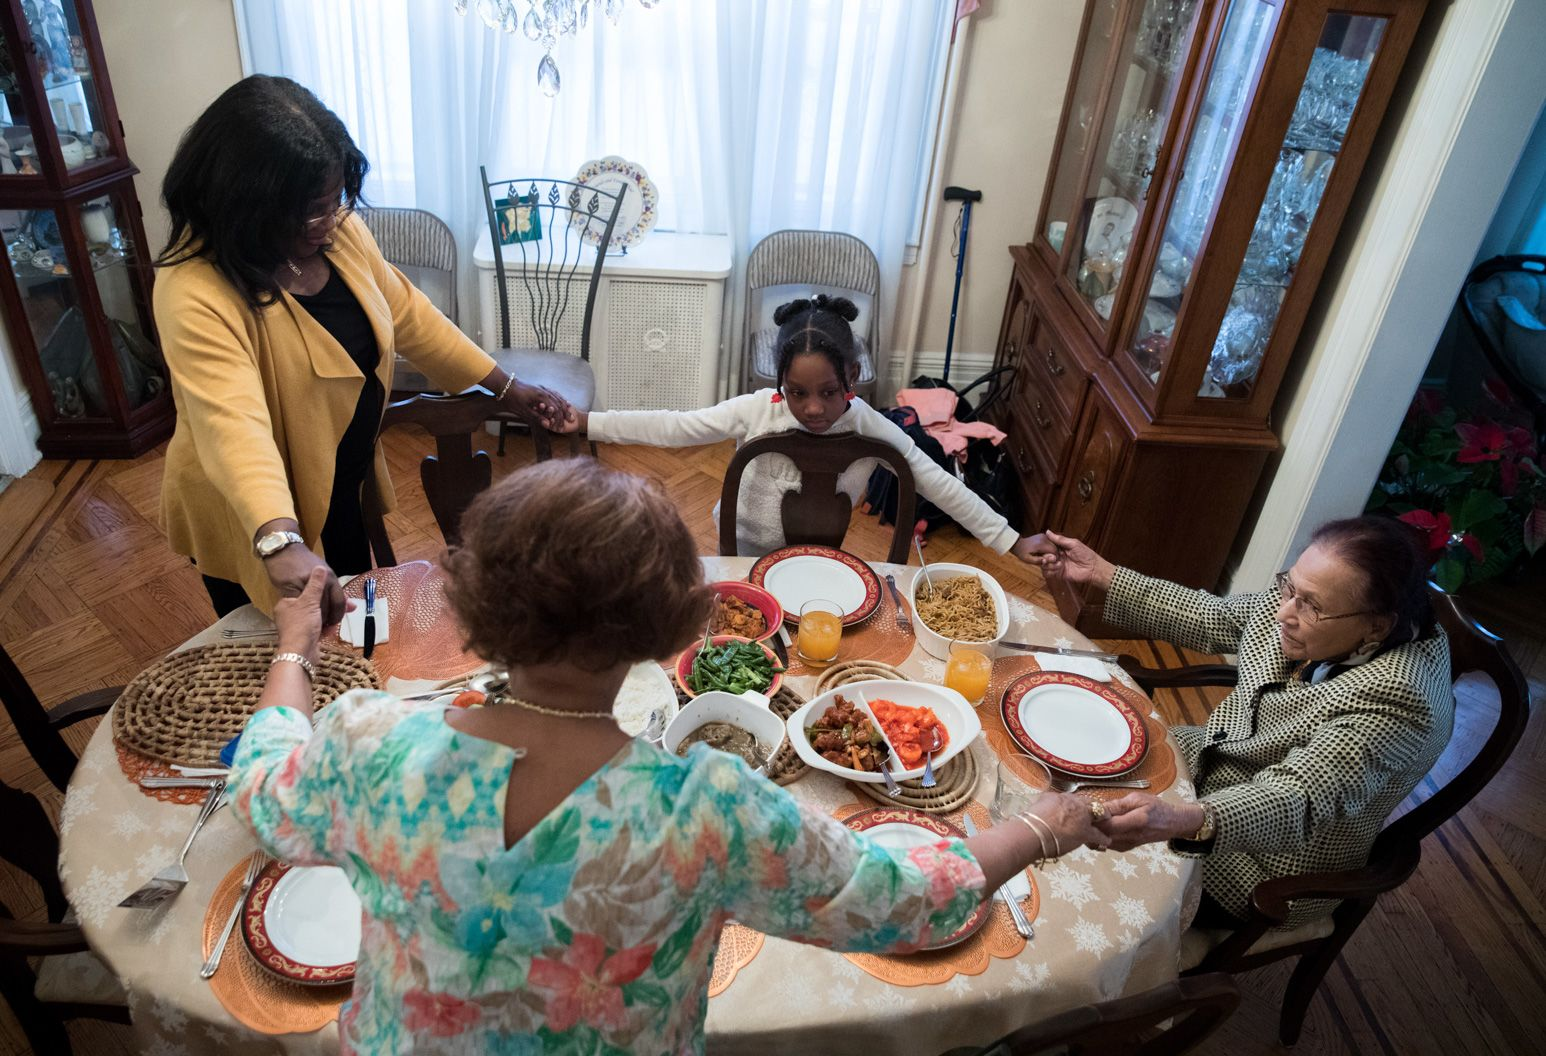 Two woman, a young child, and an older woman are praying while holding hands around a dining table.